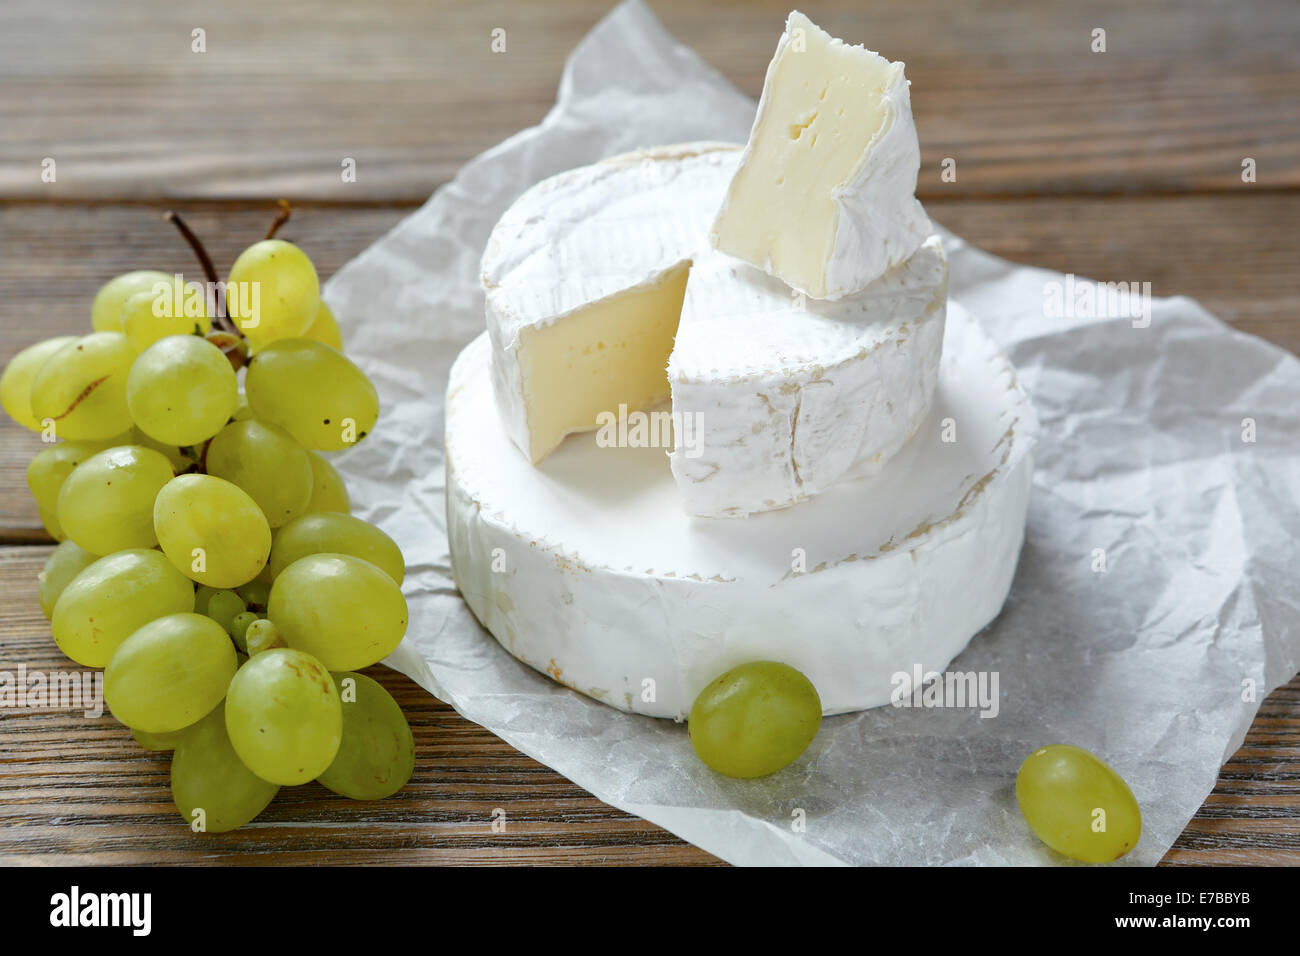 camembert  cheese with grapes, healthy food - Stock Image